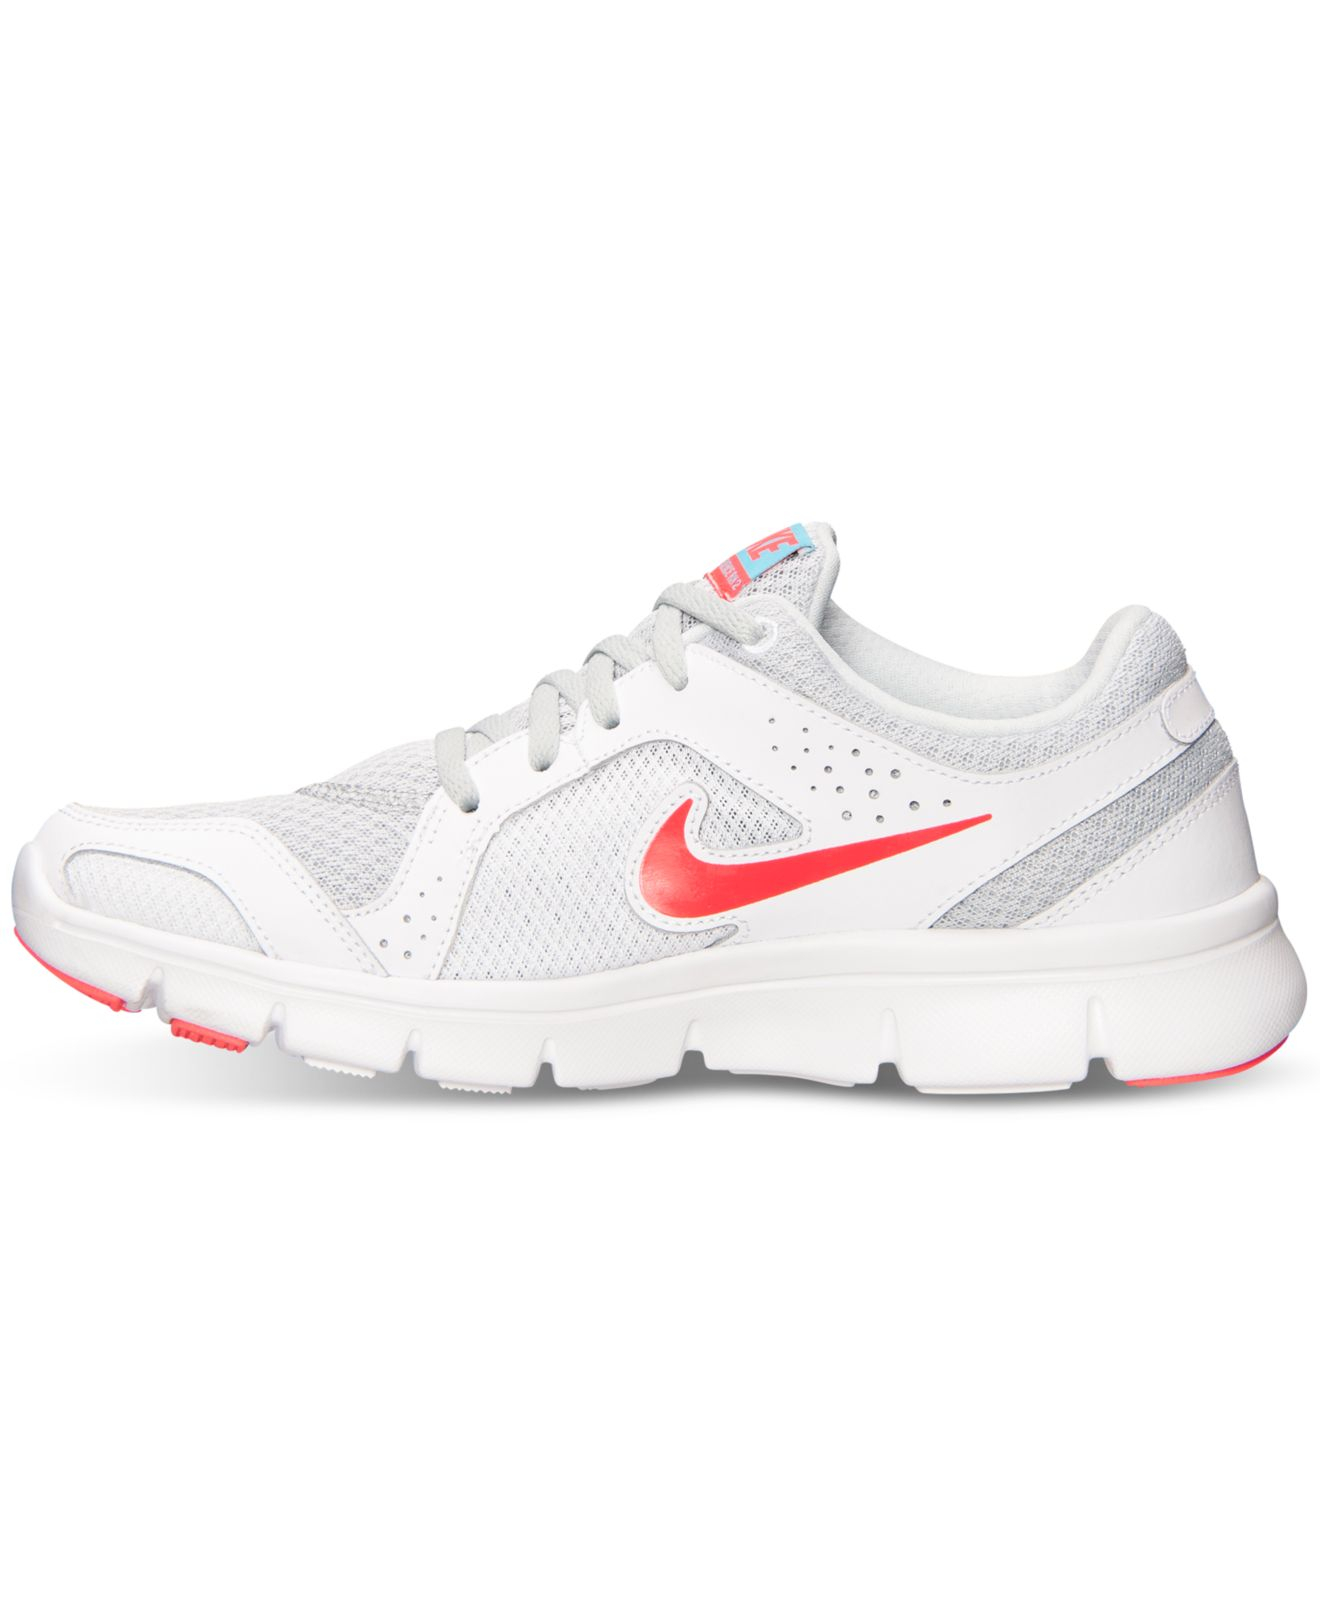 premium selection 35726 372d9 nike--womens -flex-experience-run-2-running-sneakers-from-finish-line-product-1-20044662-2-483156027-normal.jpeg